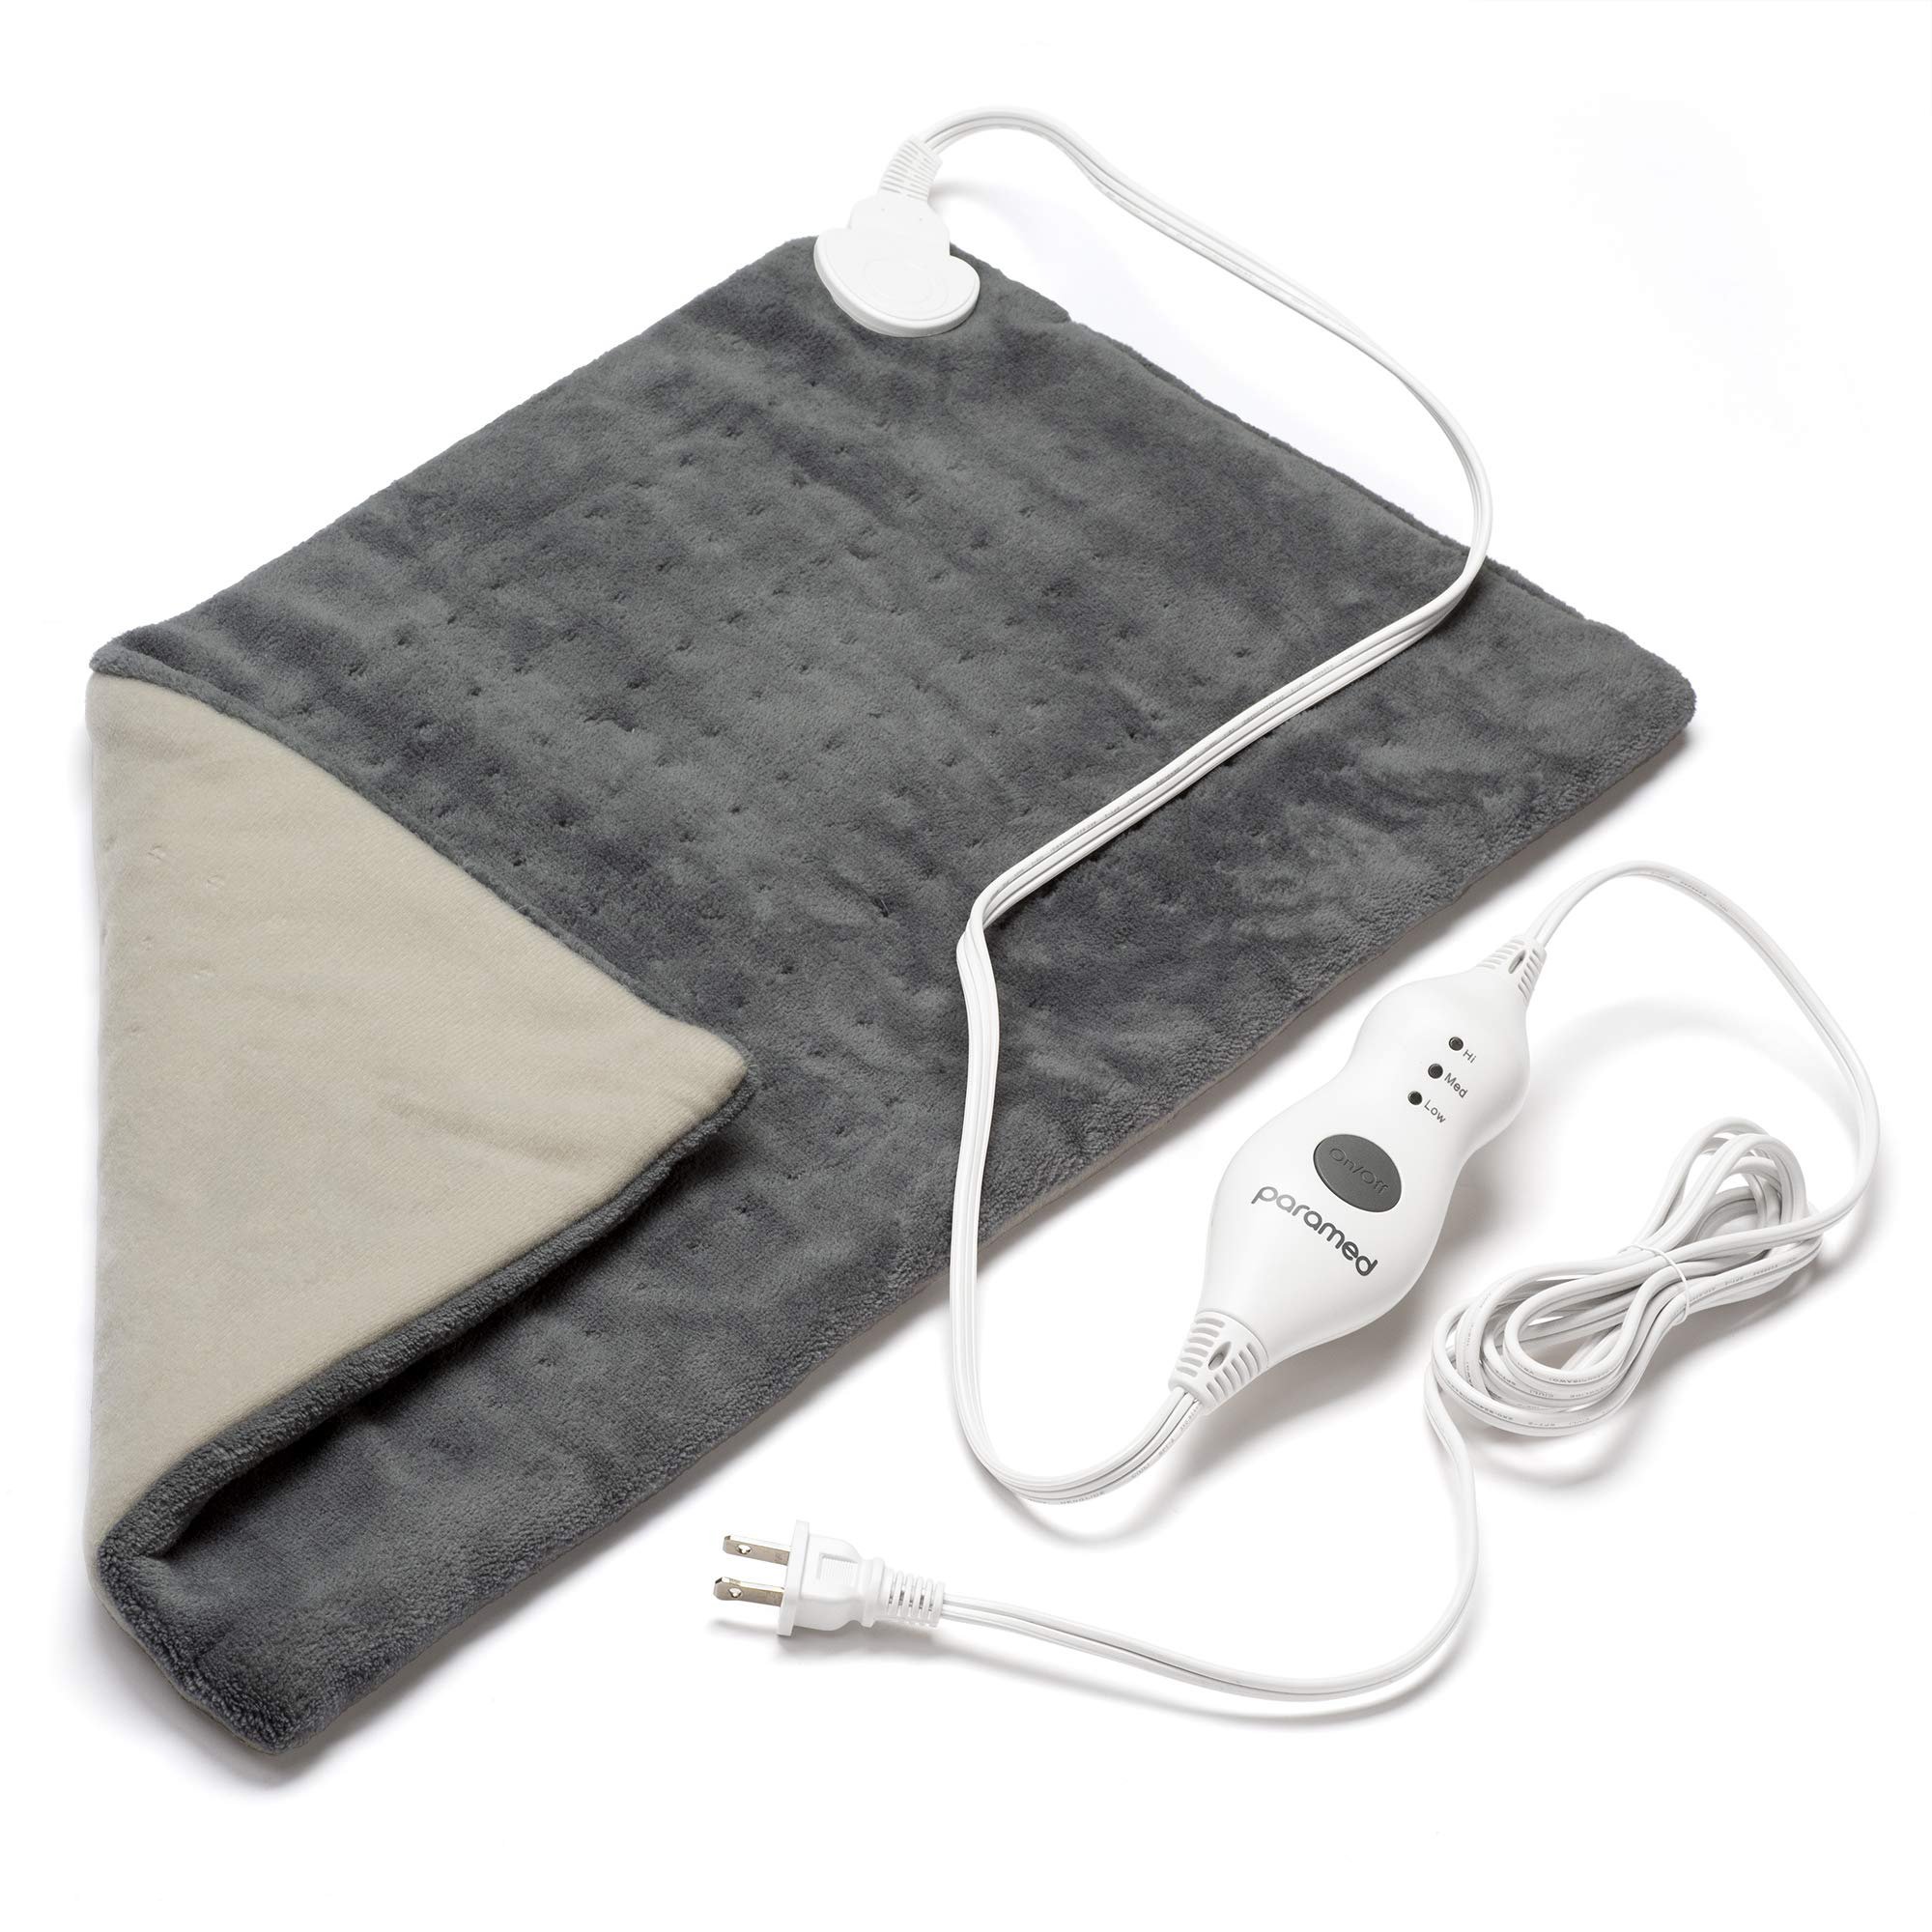 """PARAMED Heating Pad XL King Size by Paramed - Extra Large 12"""" x 24"""" - Dry Heat Therapy Functions & Auto Shut-Off - for Neck, Back, Shoulder, Menstrual Pain & Sore Muscle Relief – Washable"""